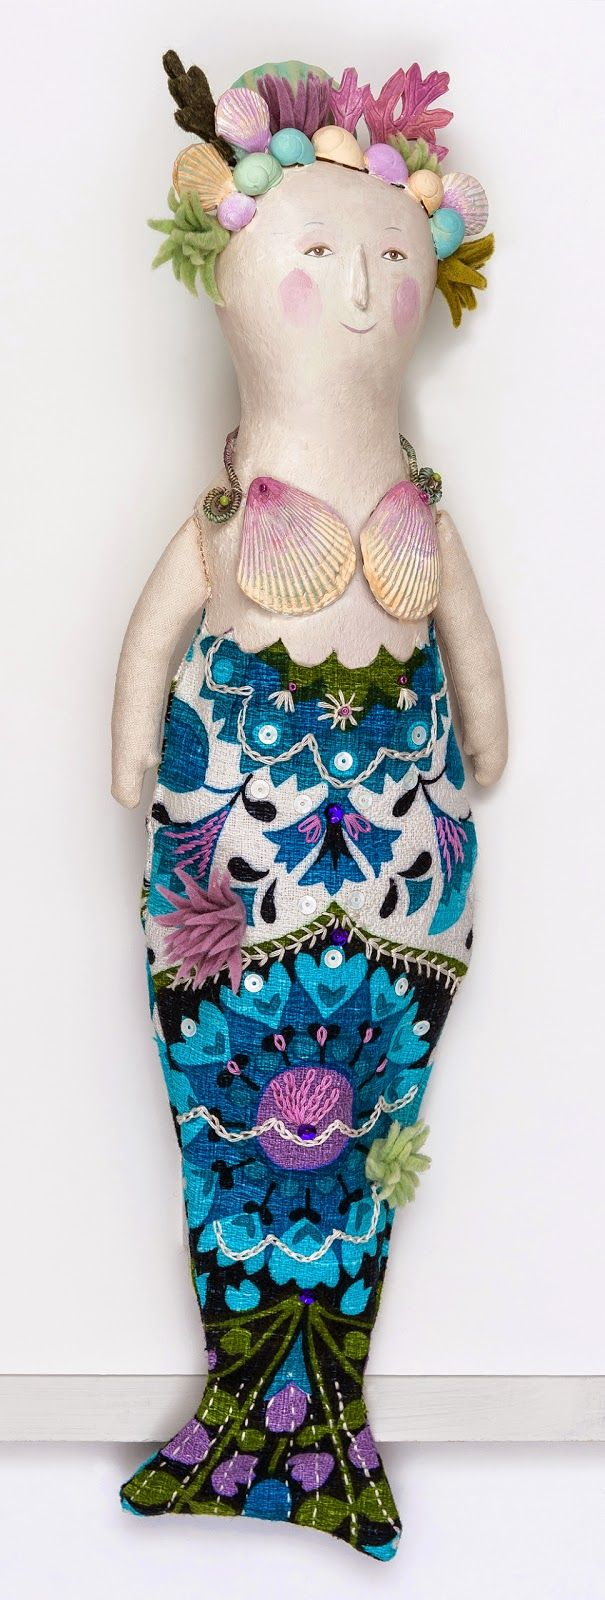 'Mermaid' doll by Sarah Young for Yorkshire Sculpture Park showcase